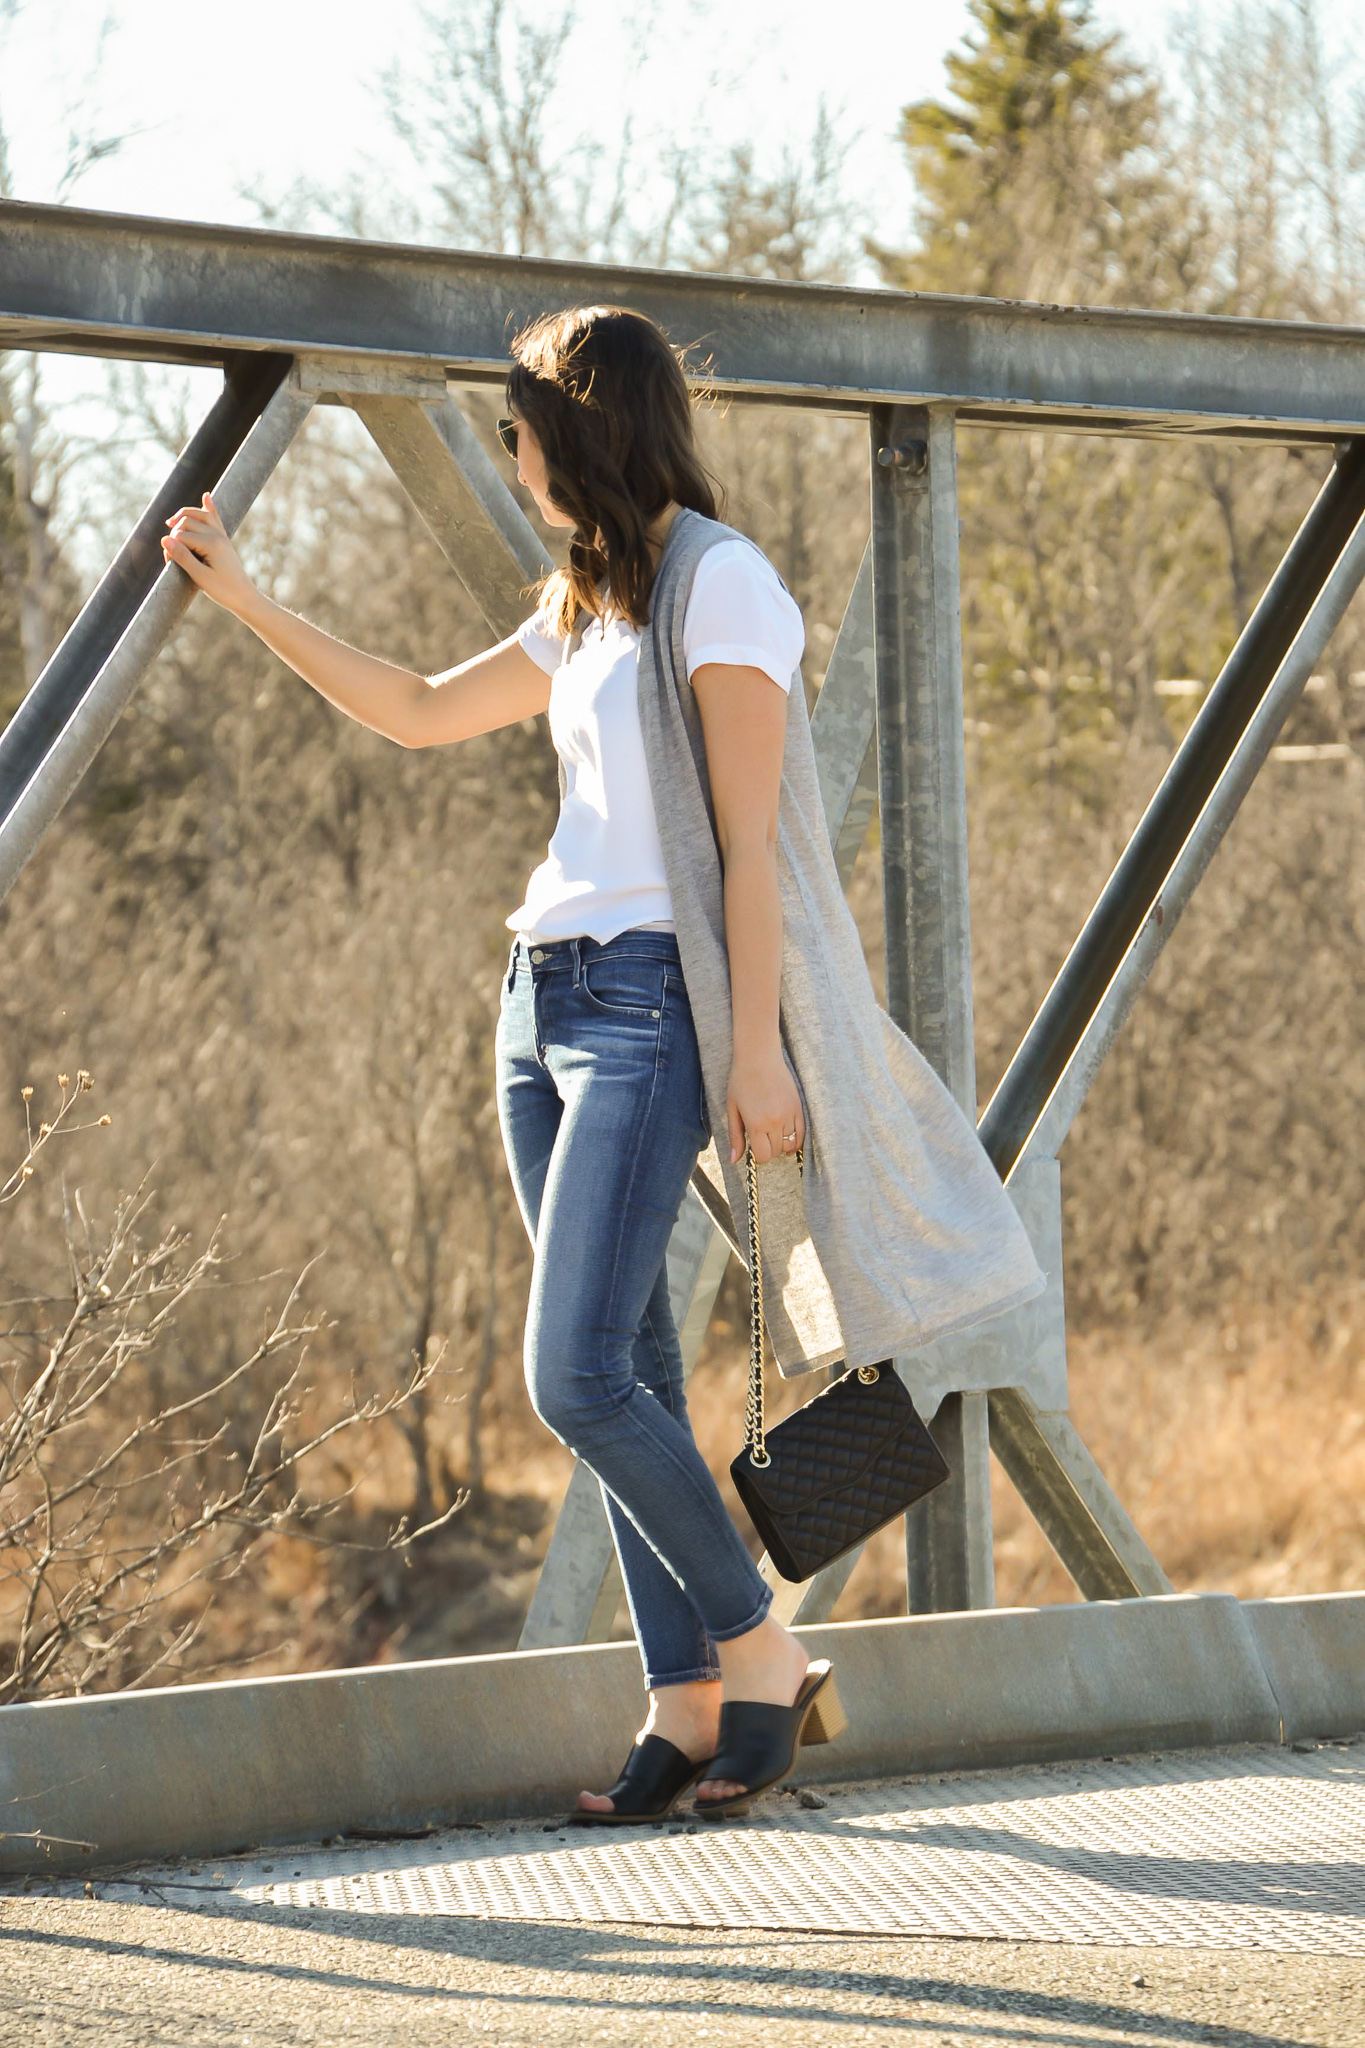 On a bridge wearing medium wash jeans, white shirt, black mules and a grey duster